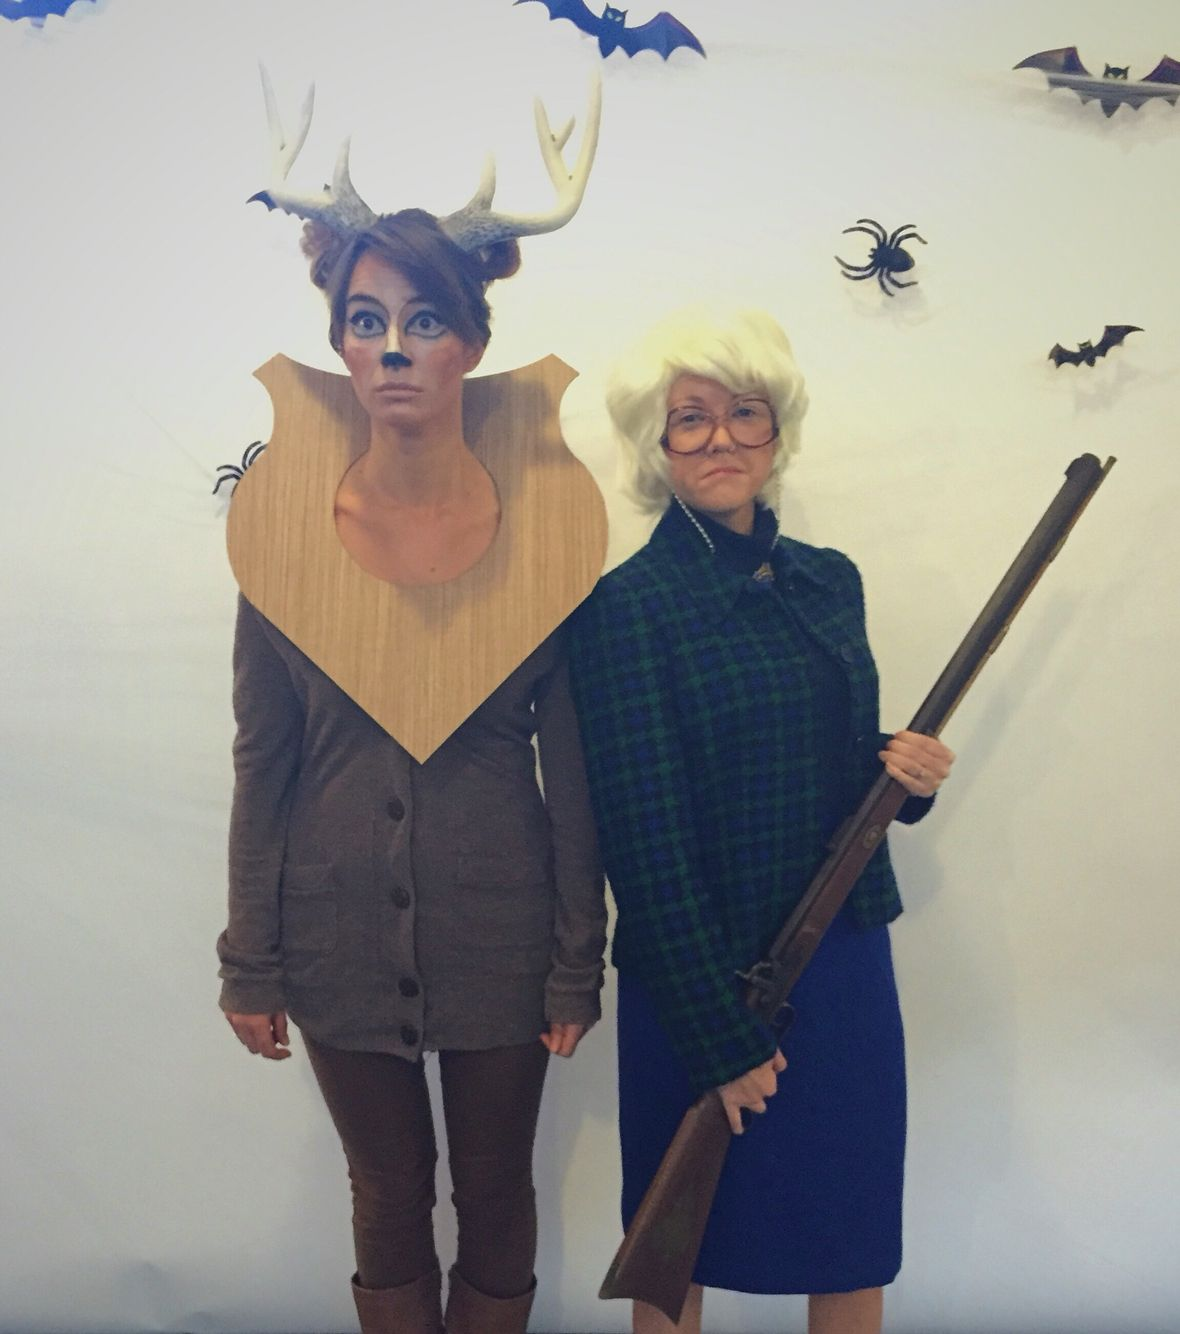 DIY Couples or Friends costume. Taxidermy deer head and Hunter  sc 1 st  Pinterest & DIY Couples or Friends costume. Taxidermy deer head and Hunter ...